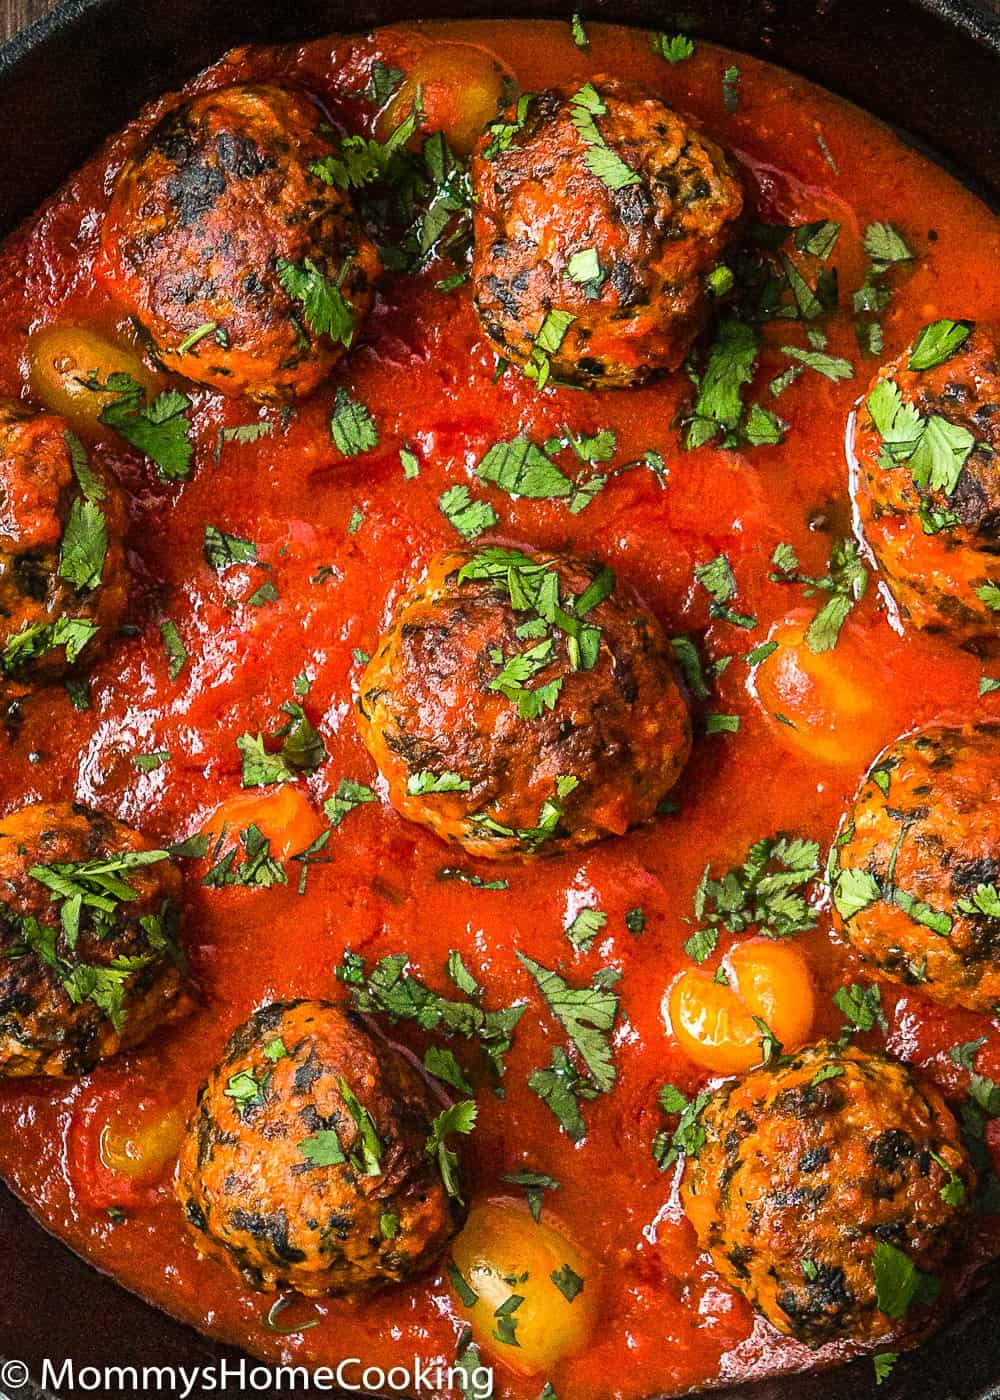 Eggless turkey meat balls in tomato sauce and herbs for garnish.